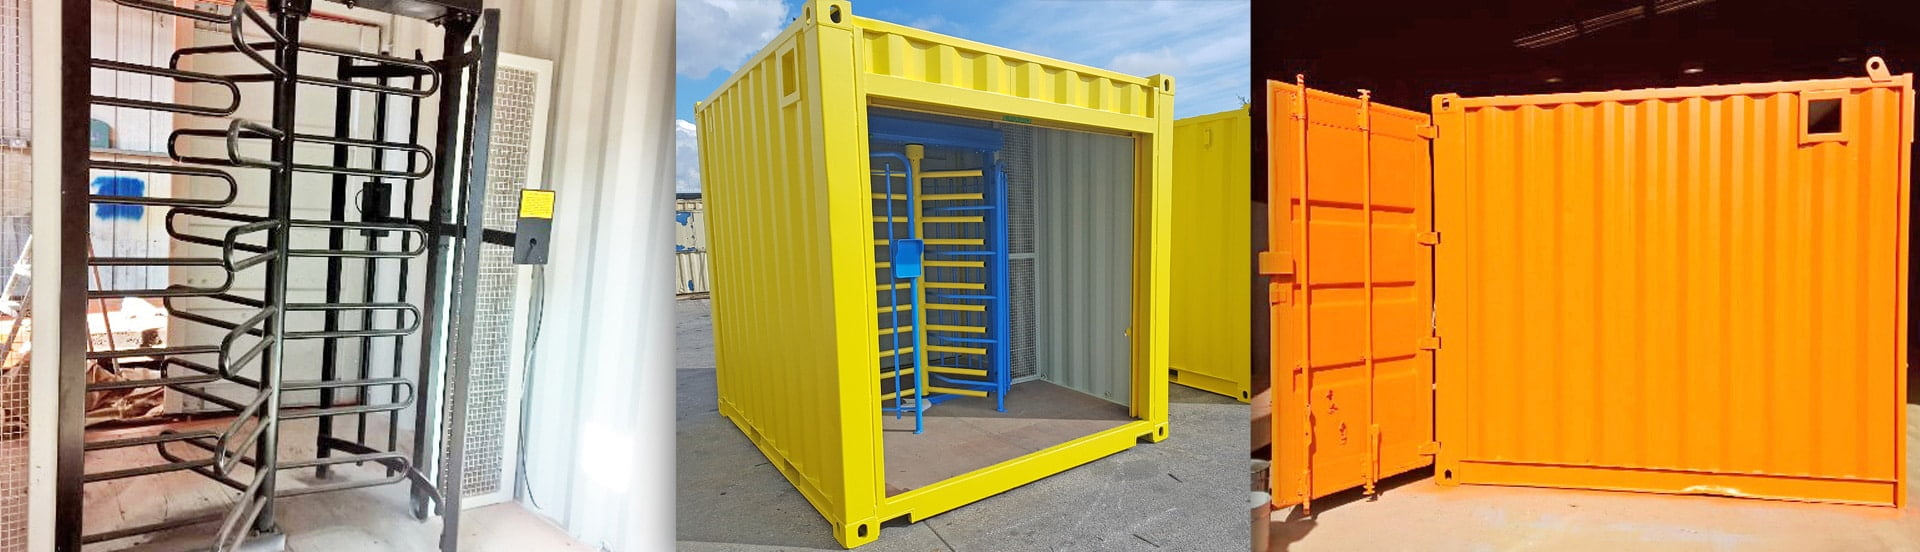 Security and Turnstile Containers